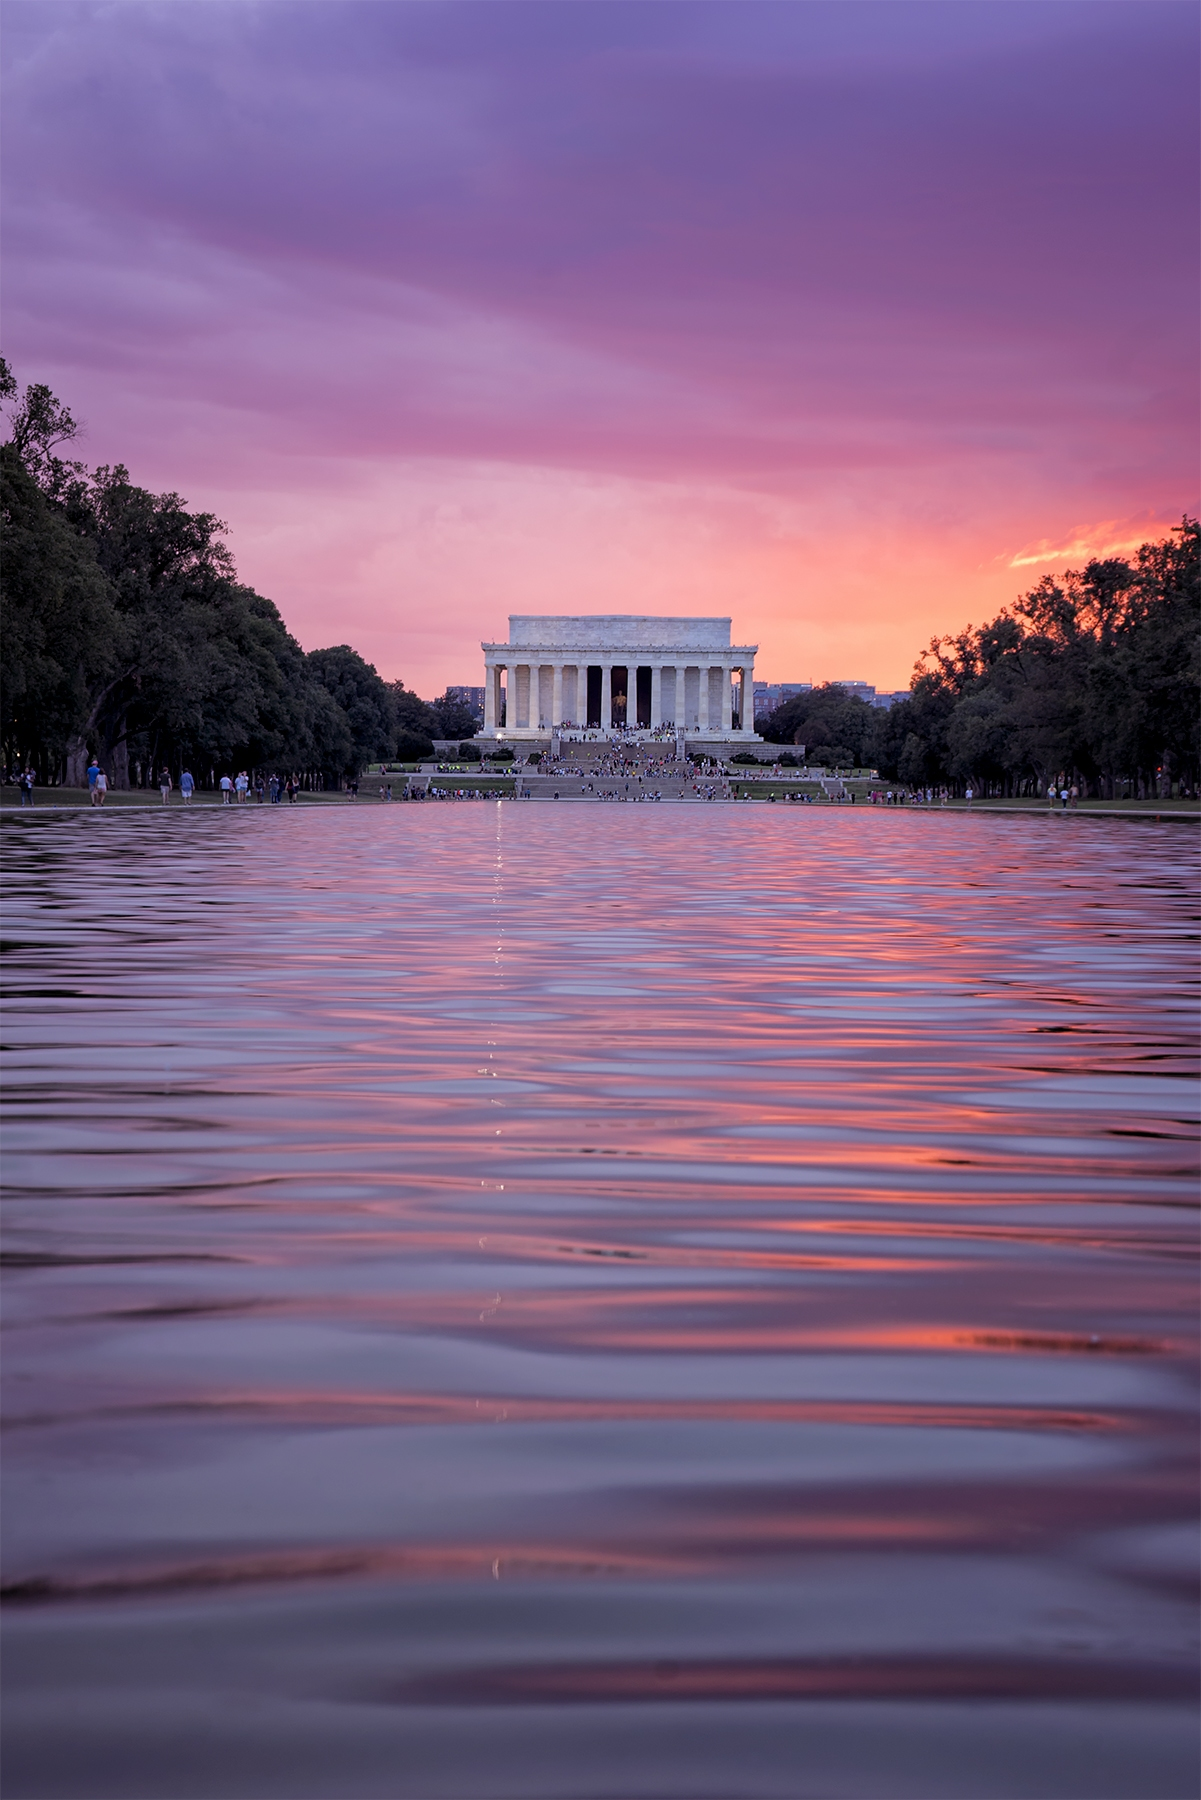 lincoln memorial reflecting pool, reflecting pool, washington dc, sunset, purple, pink, united states, lincoln memorial, national mall, water, parks, memorial sites, forrest gump